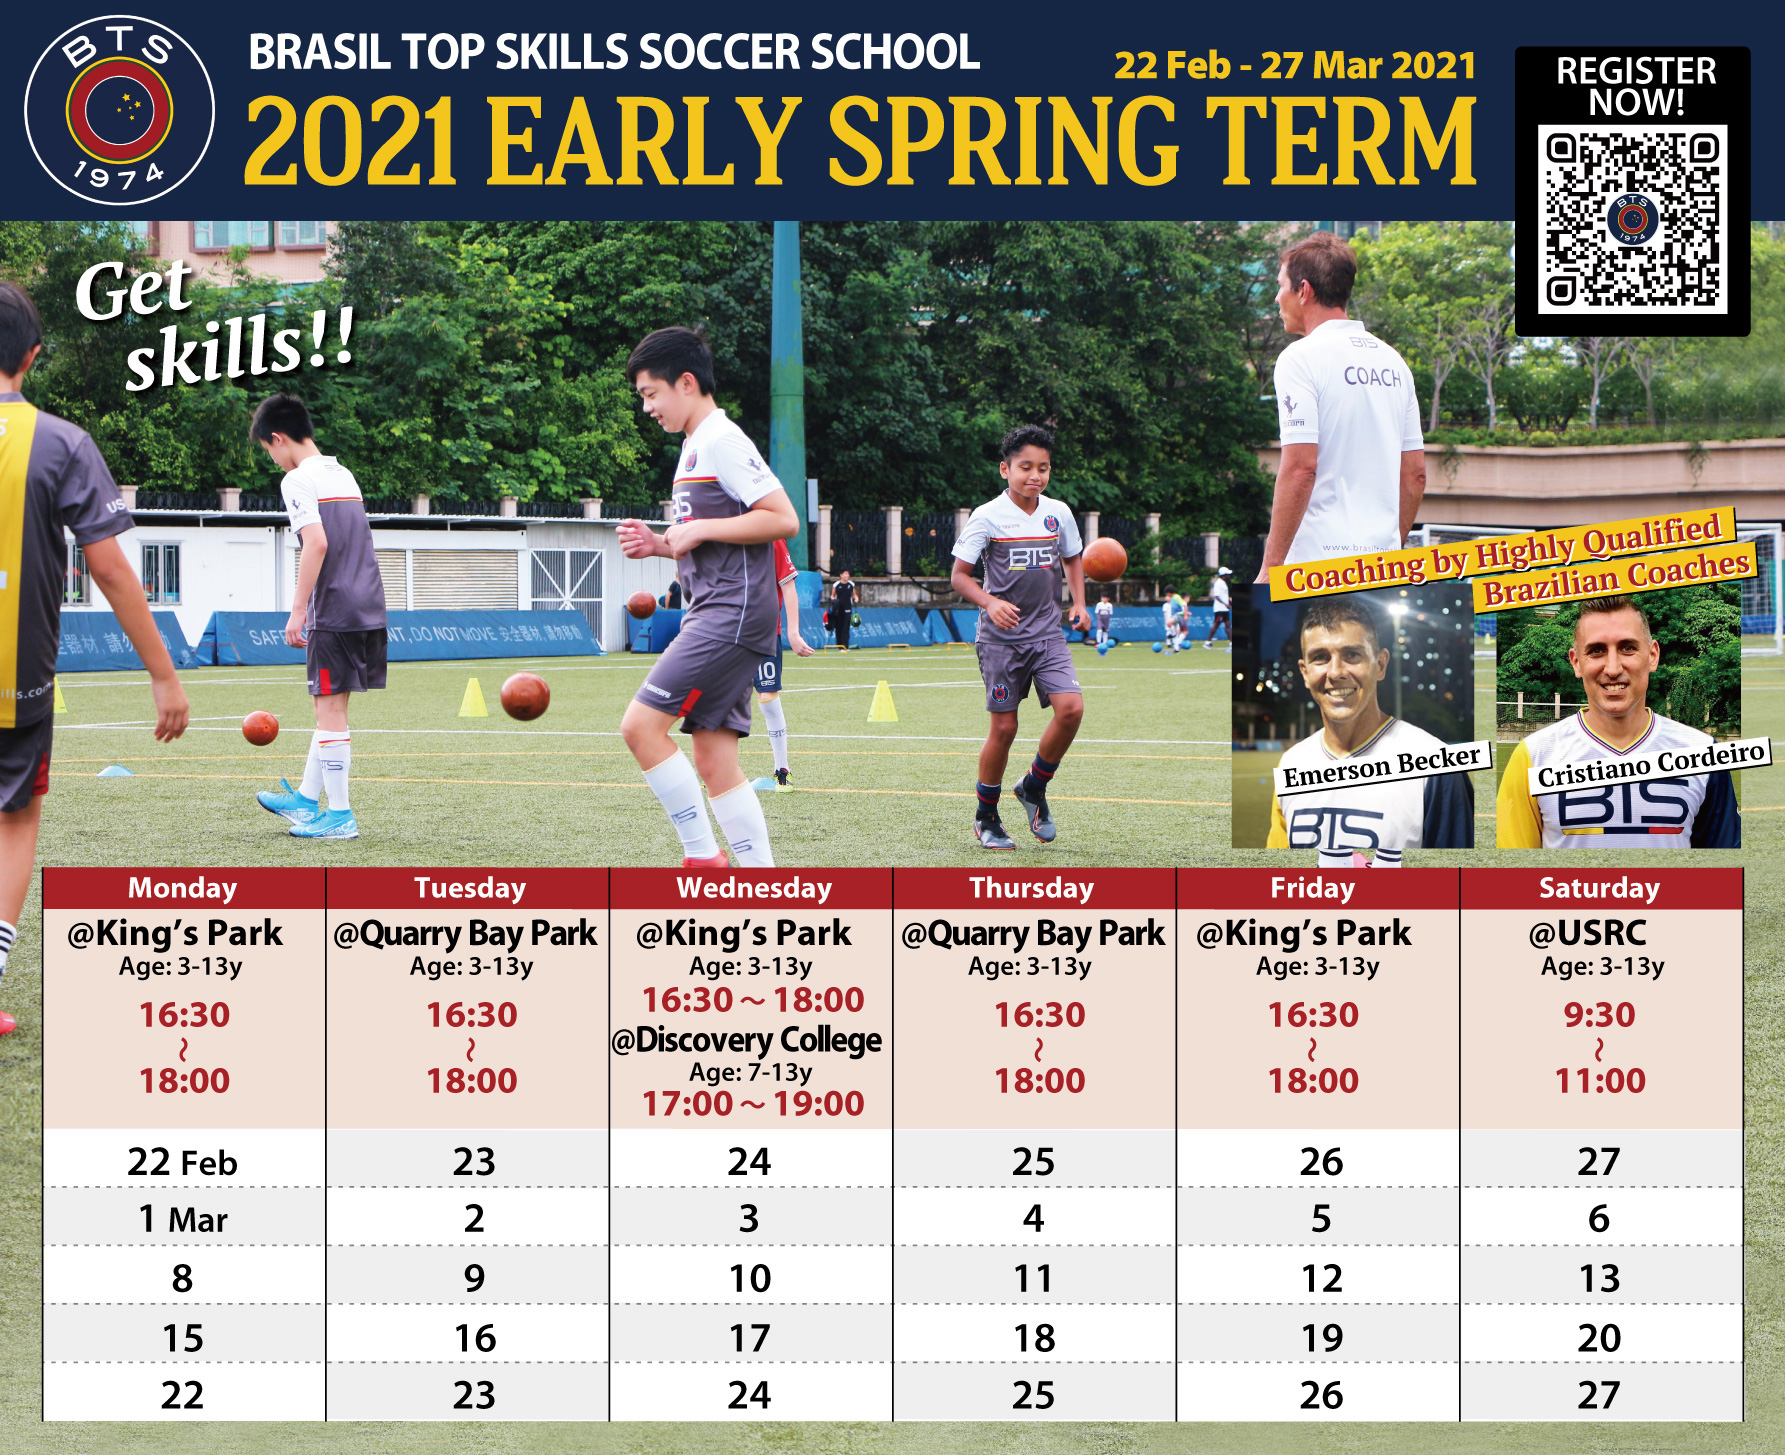 2021 EARLY SPRING TERM